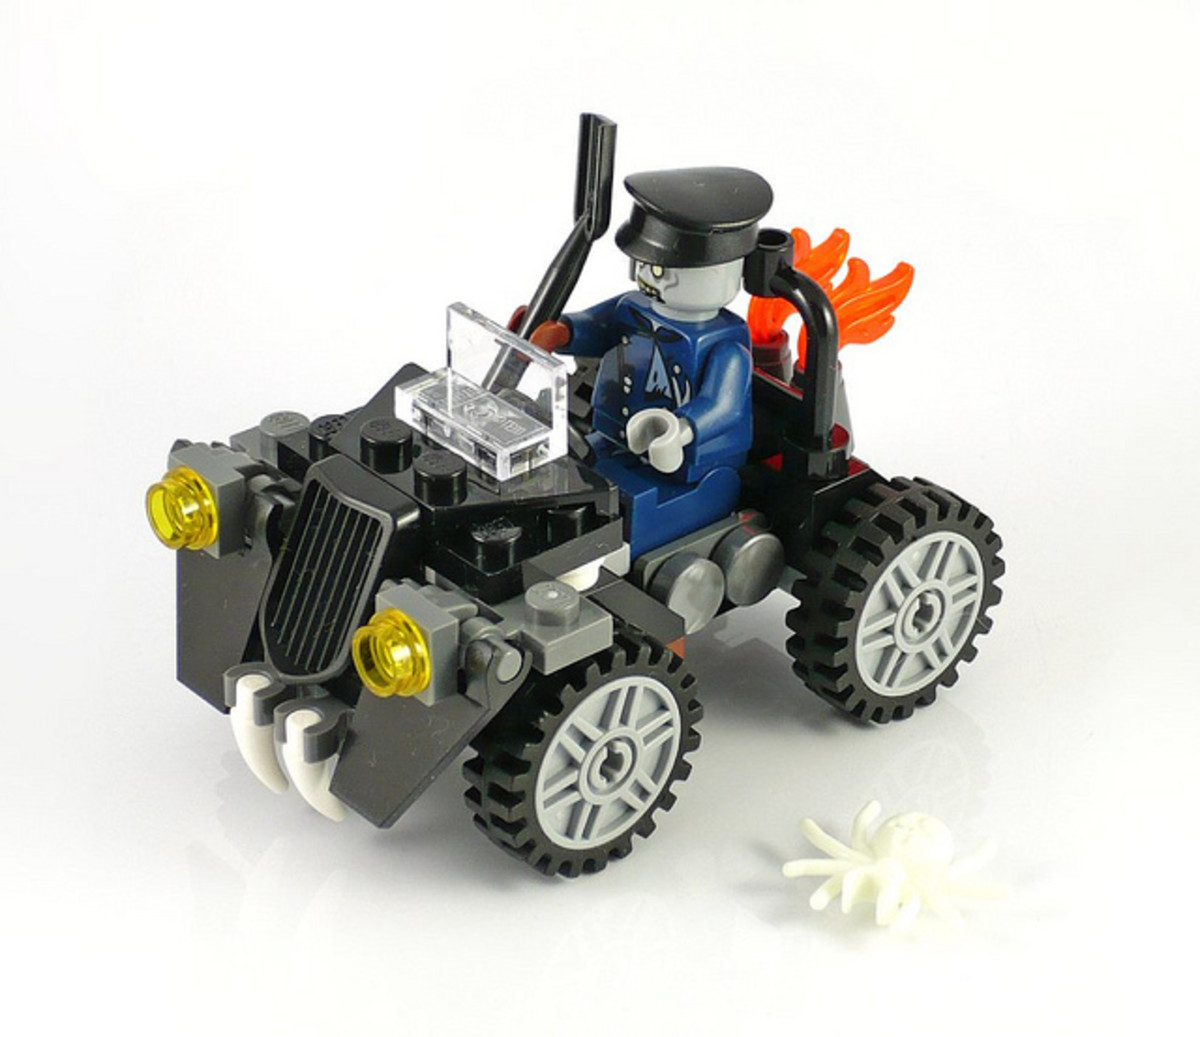 LEGO Monster Fighters Zombie Car 40076 Assembled